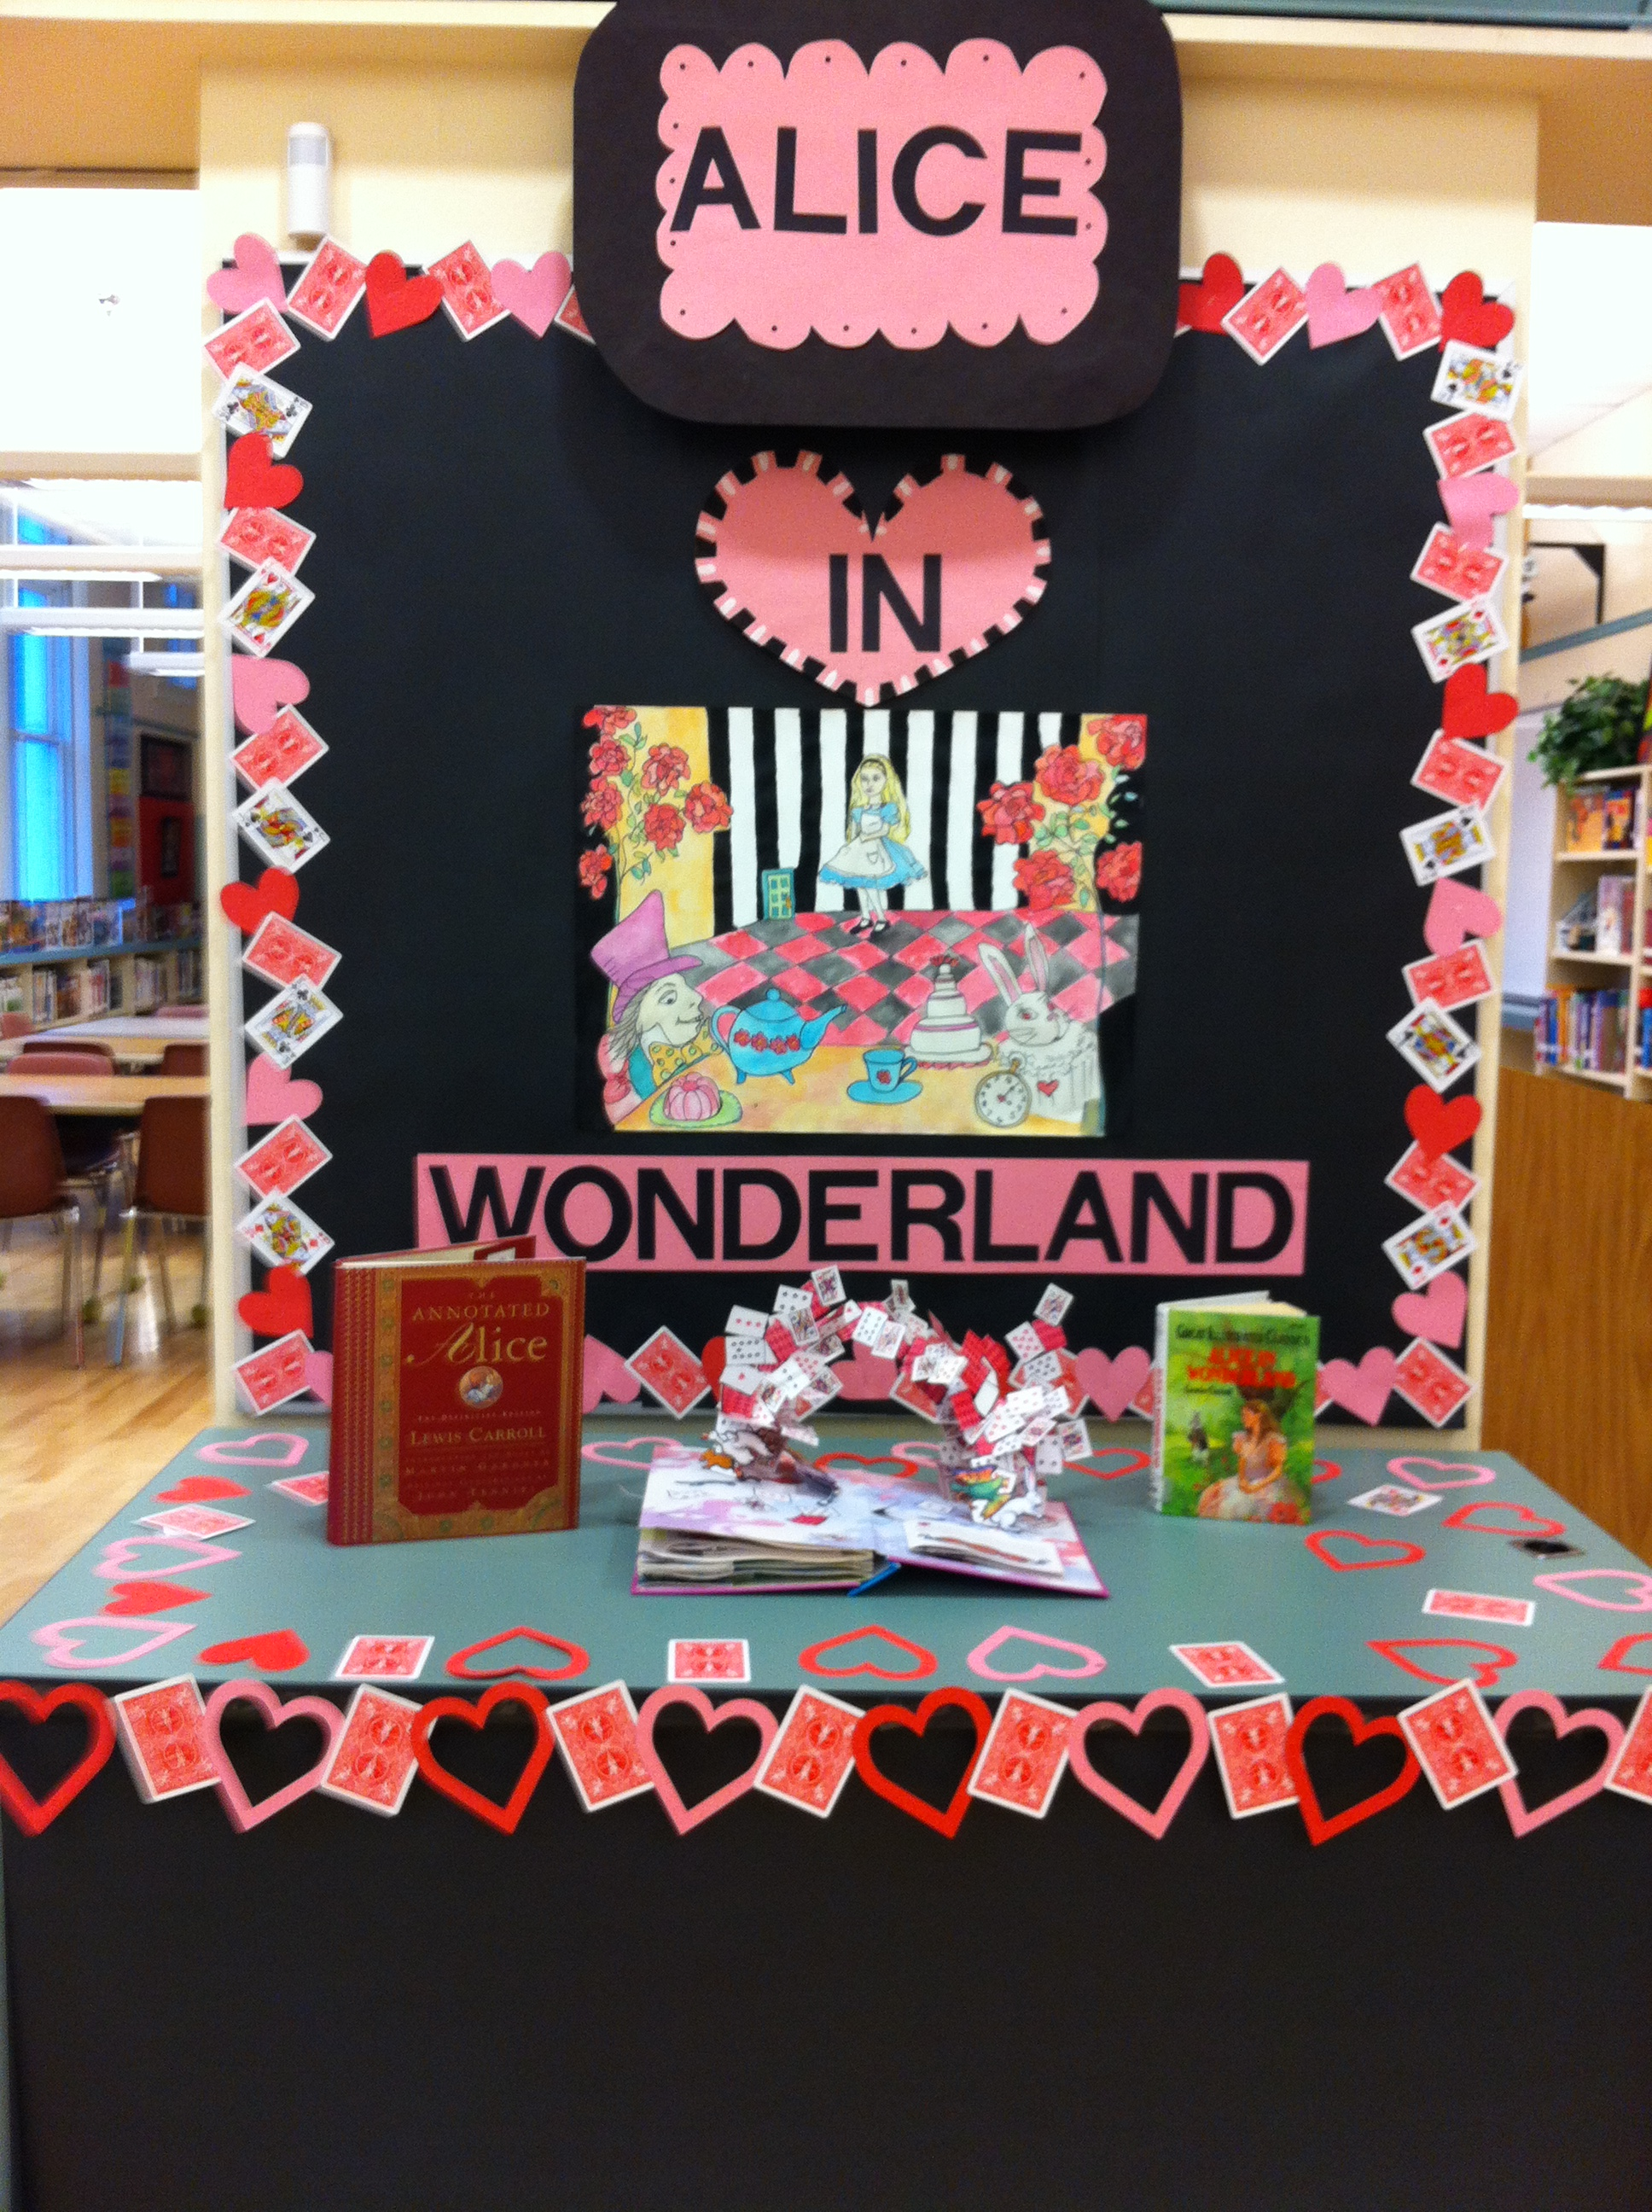 Welcome to the library decorating ideas to make kids Alice and wonderland art projects